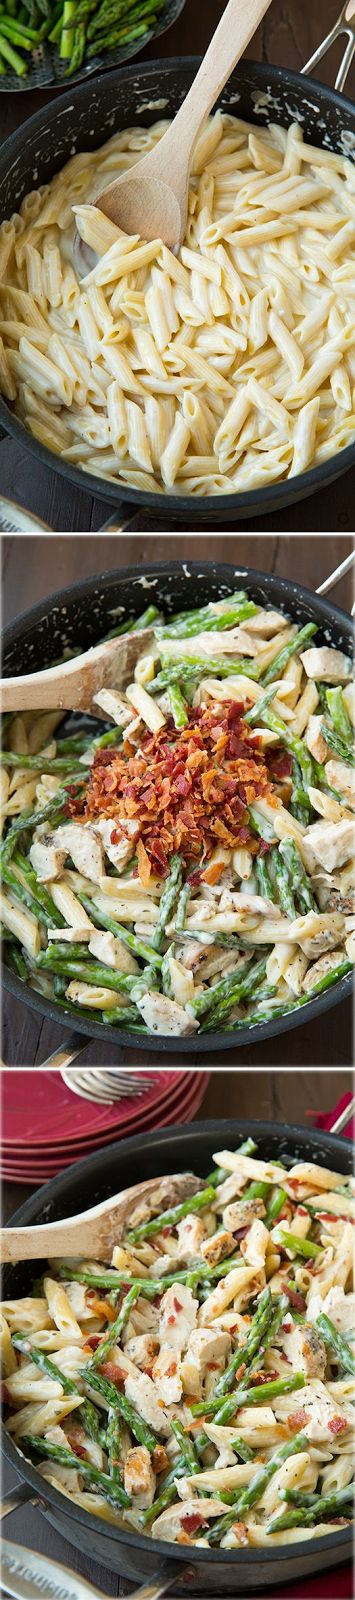 Creamy Chicken and Asparagus Pasta with Bacon - this pasta is AMAZING! Like a lighter alfredo pasta with bonus of herbed chicken, fresh asparagus and salty bacon. So good!